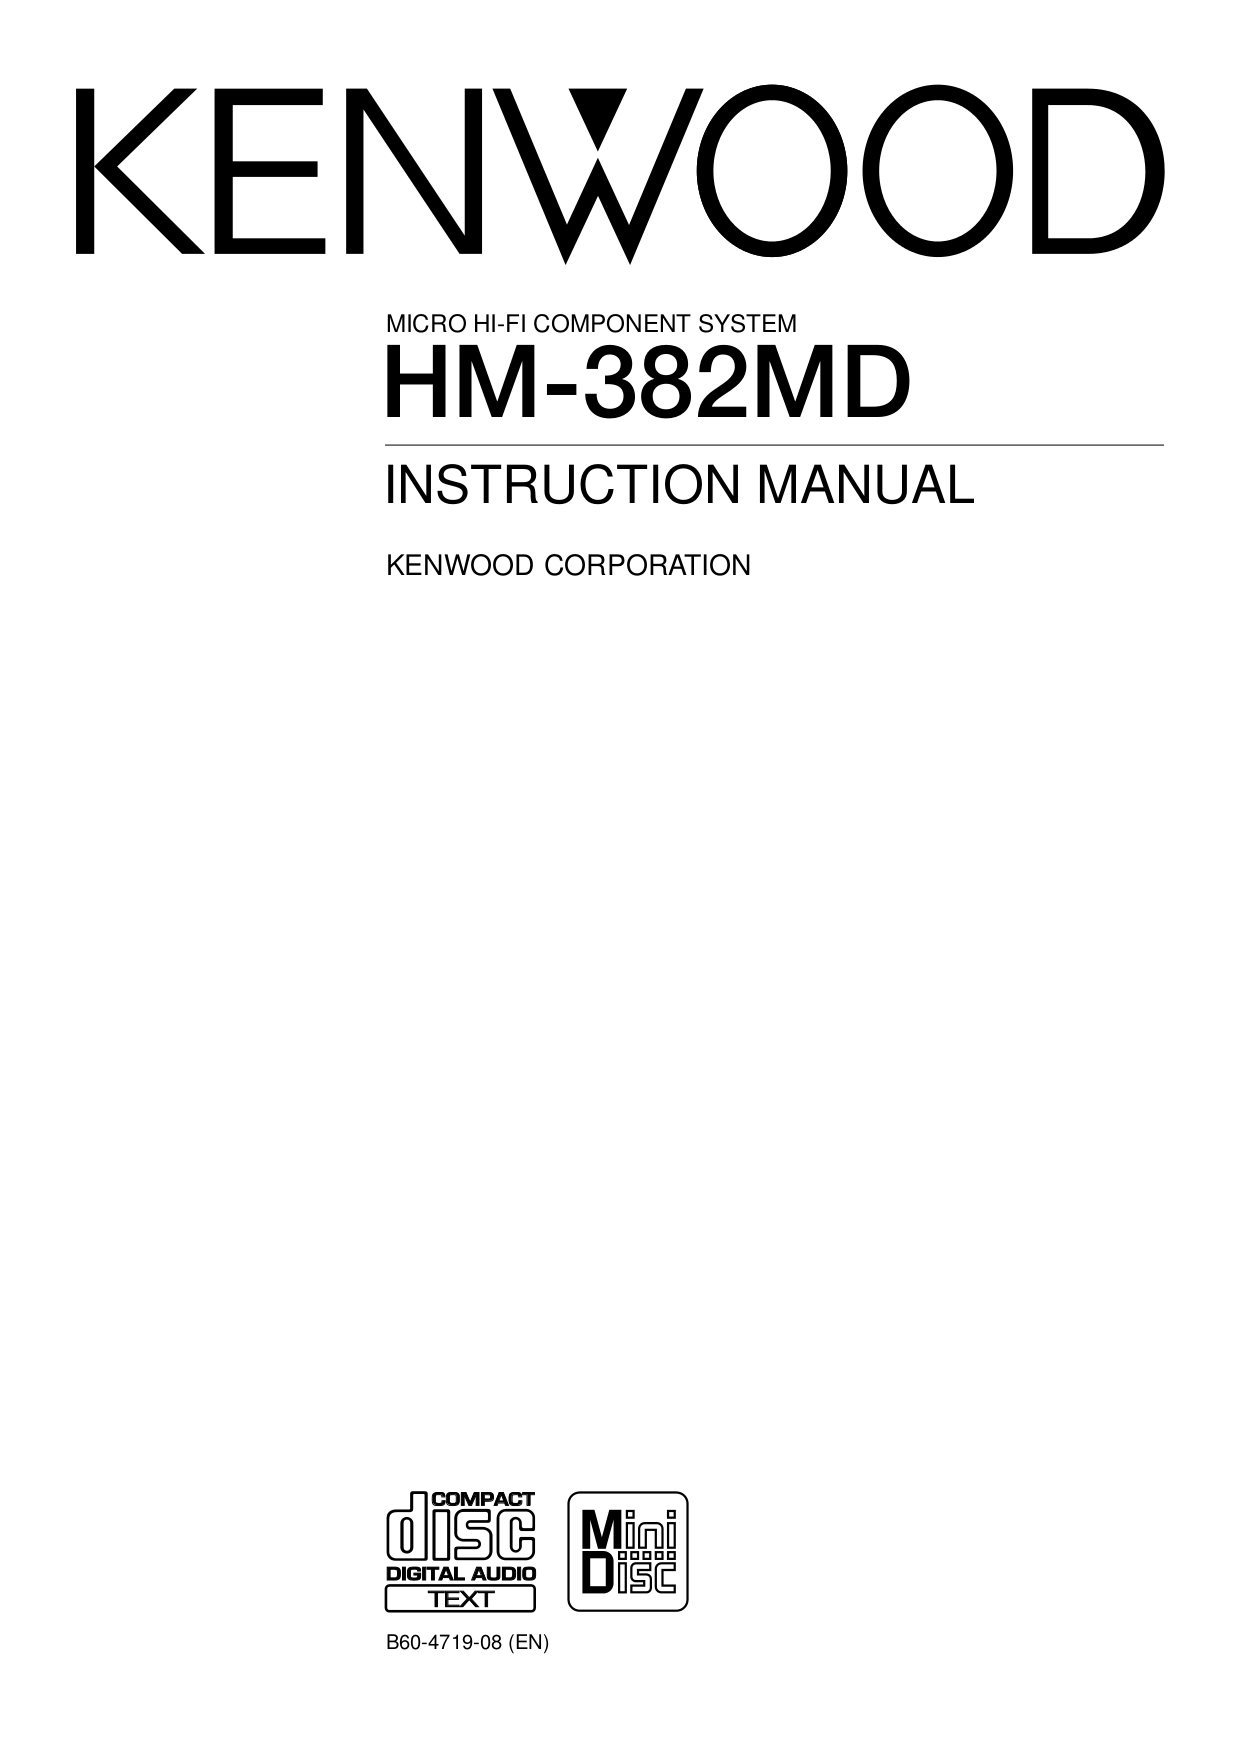 Download free pdf for Kenwood P-100 Turntable manual